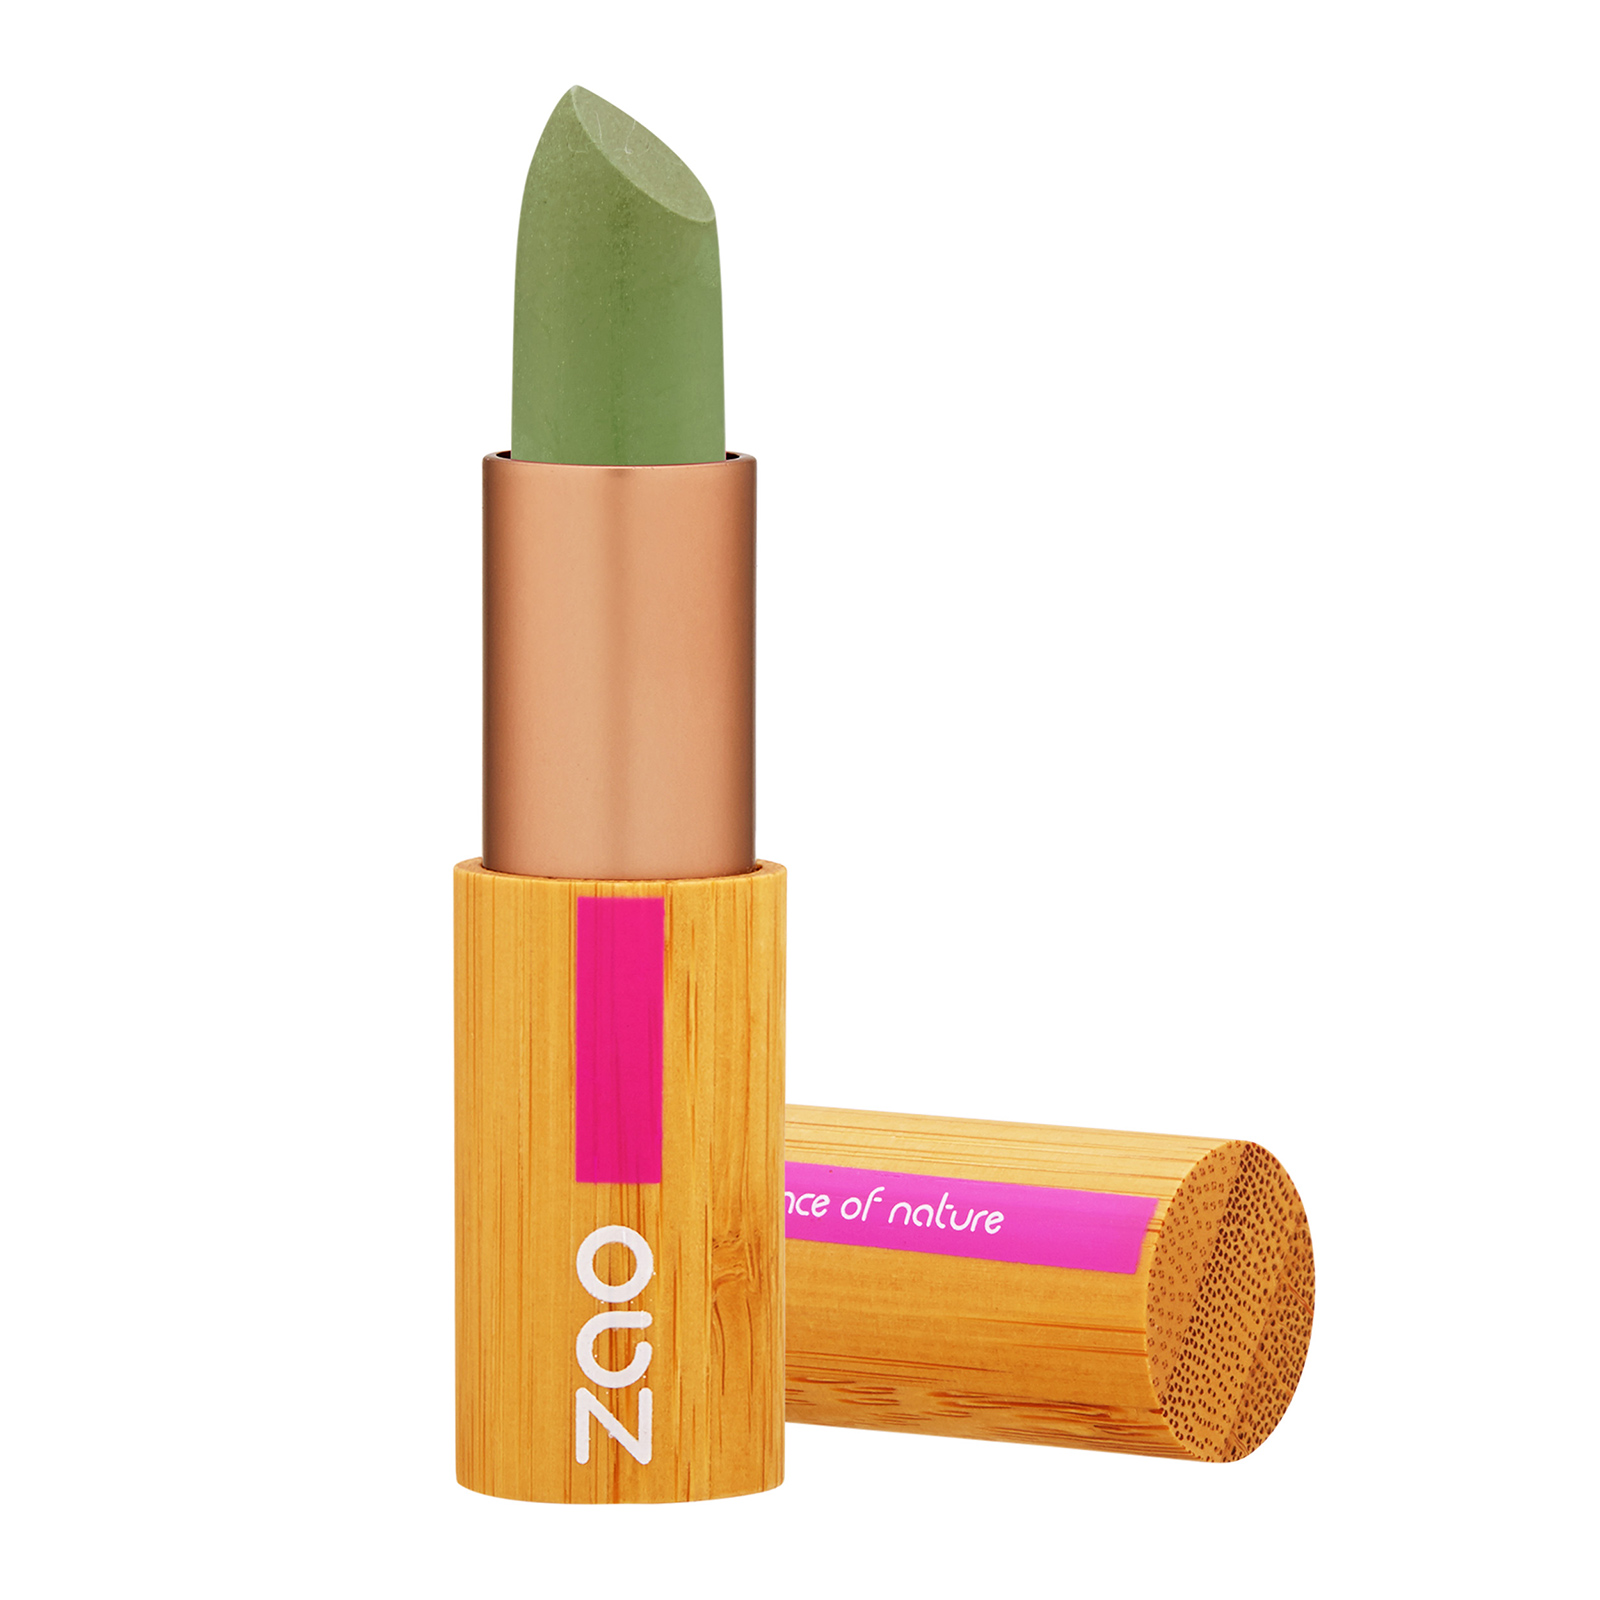 ZAO Concealer Stick 499 Green Anti Red Patches, 0.18oz, 3.5g